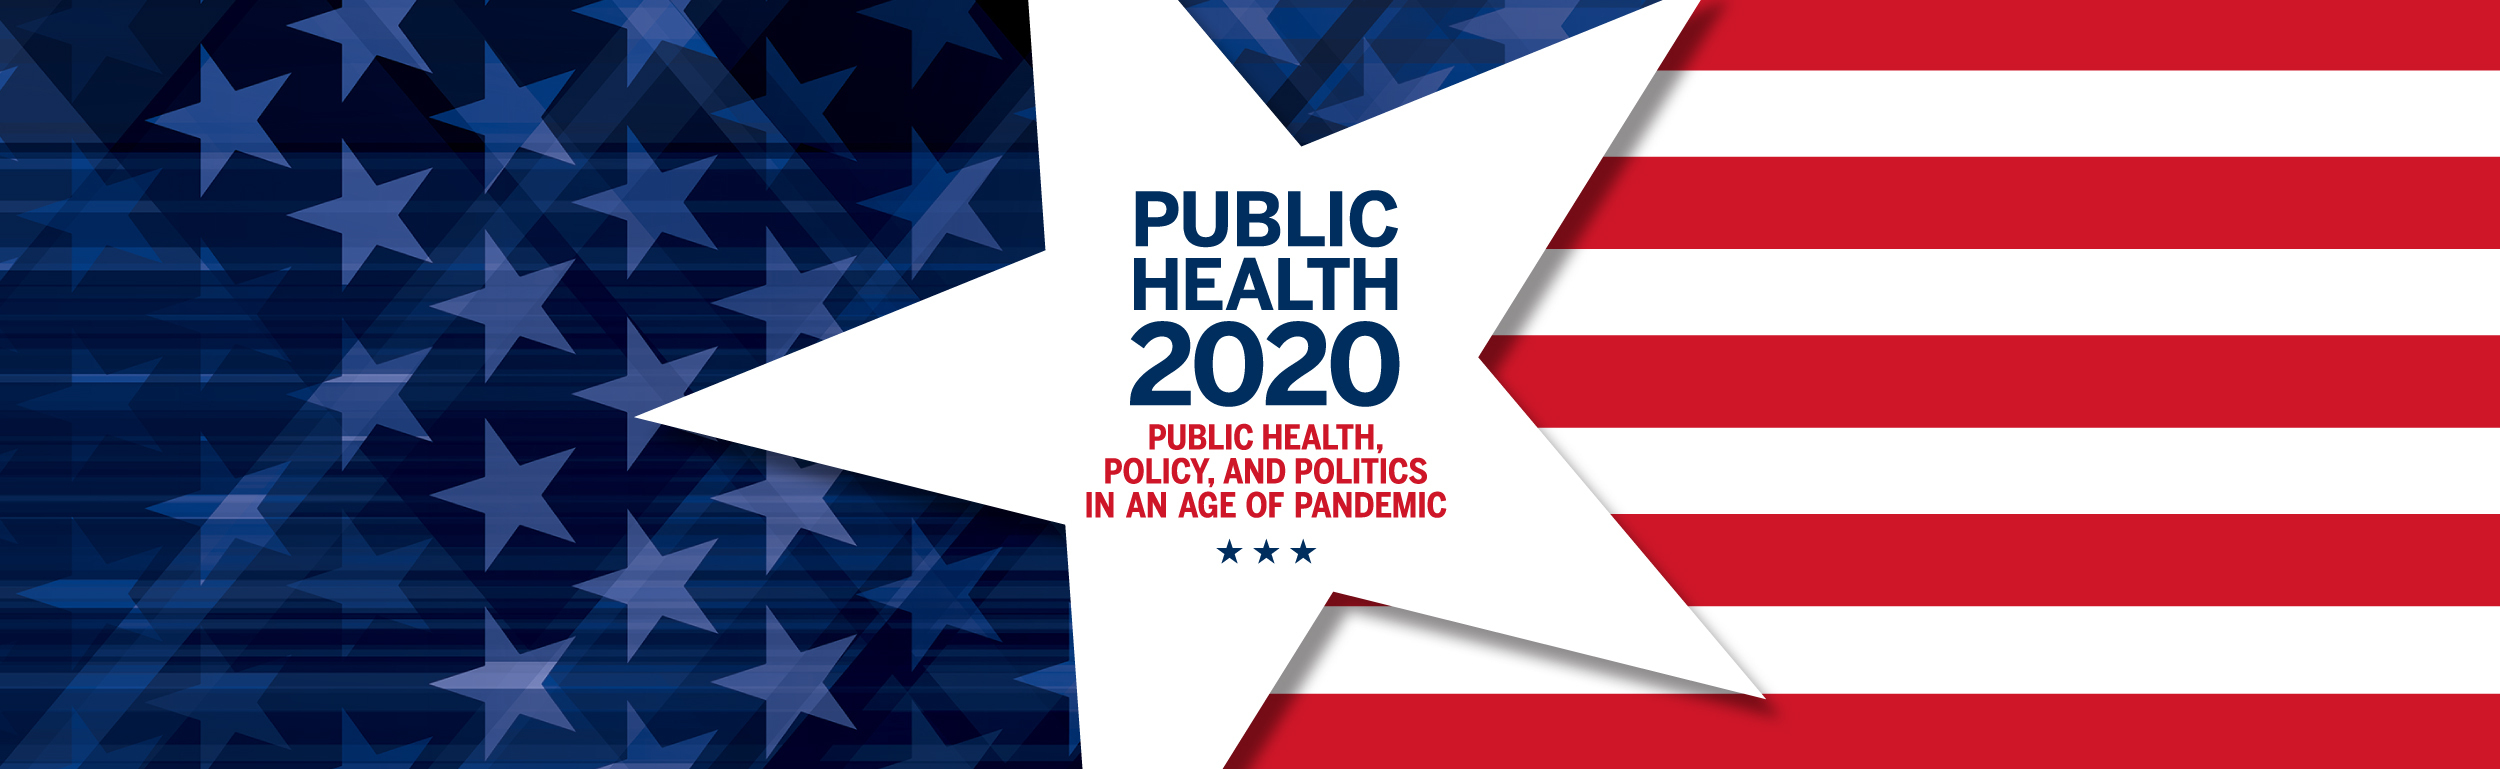 "Findings Spring 2020 Cover - A image of stars and stripes with a cover that reads ""Public Health 2020: Public Health, Policy, And Politics In An Age of Pandemic"""